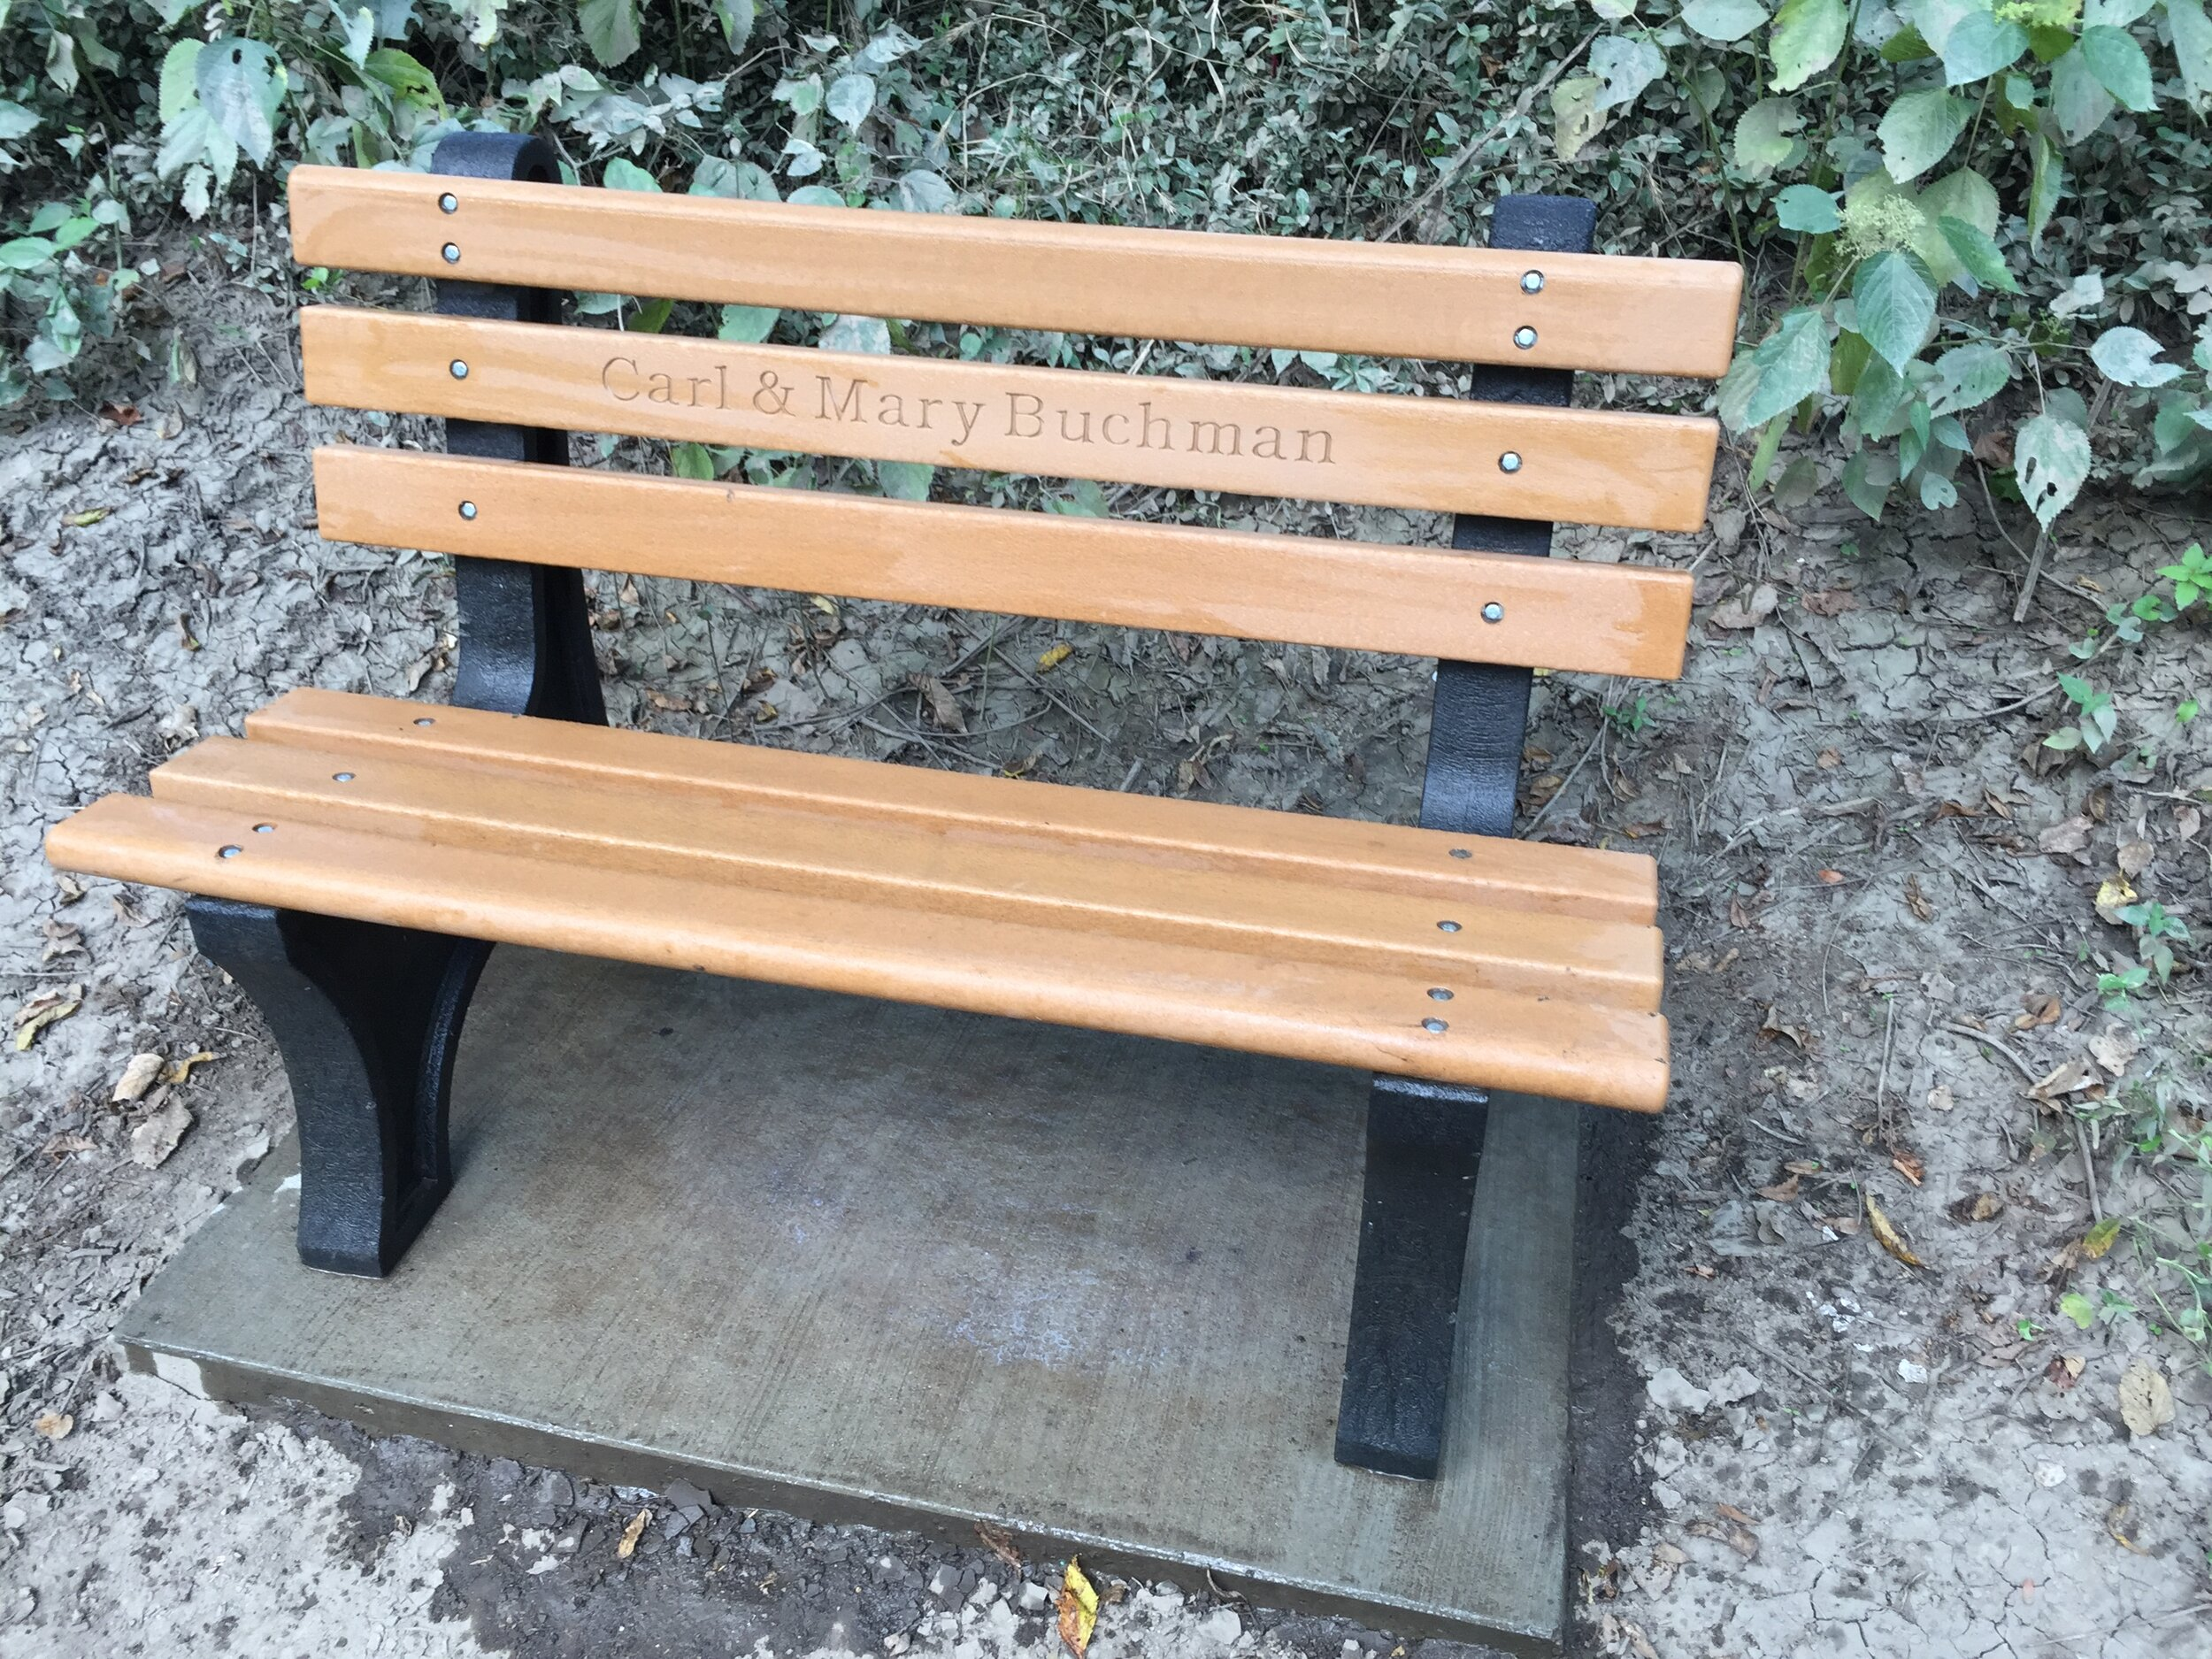 Benches cleaned by volunteer after flooding event